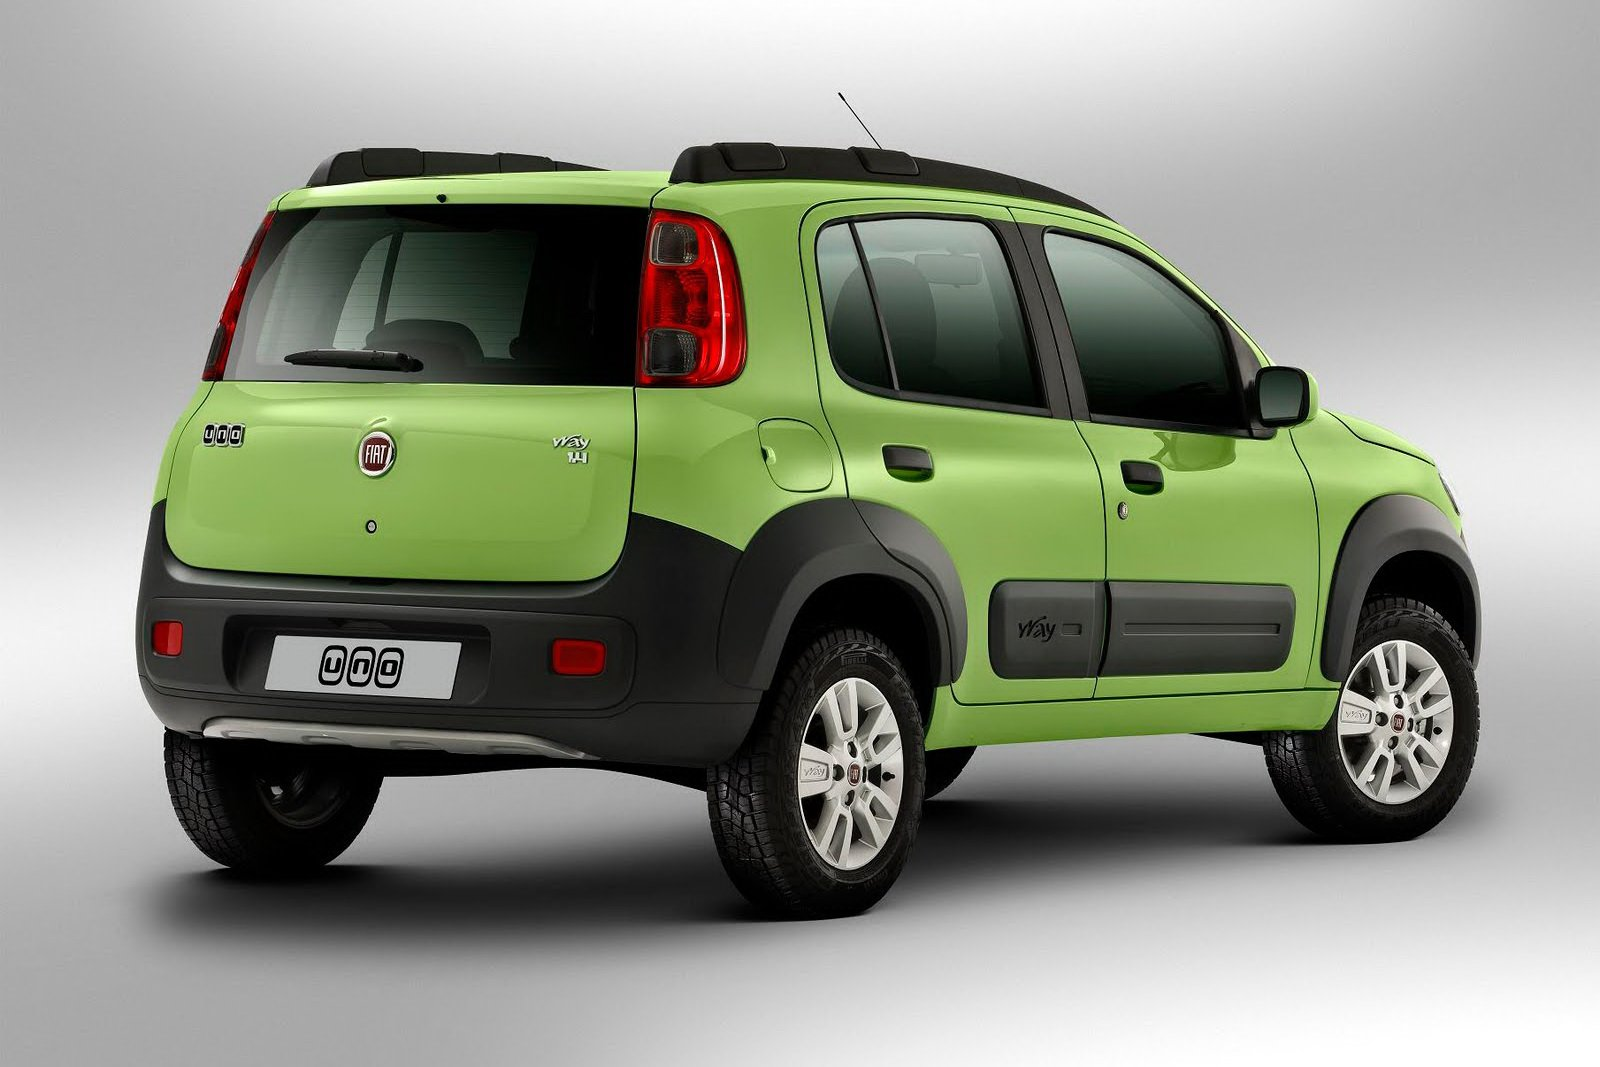 New Auto Cars New 2011 Fiat Uno Wallpaper On This Month